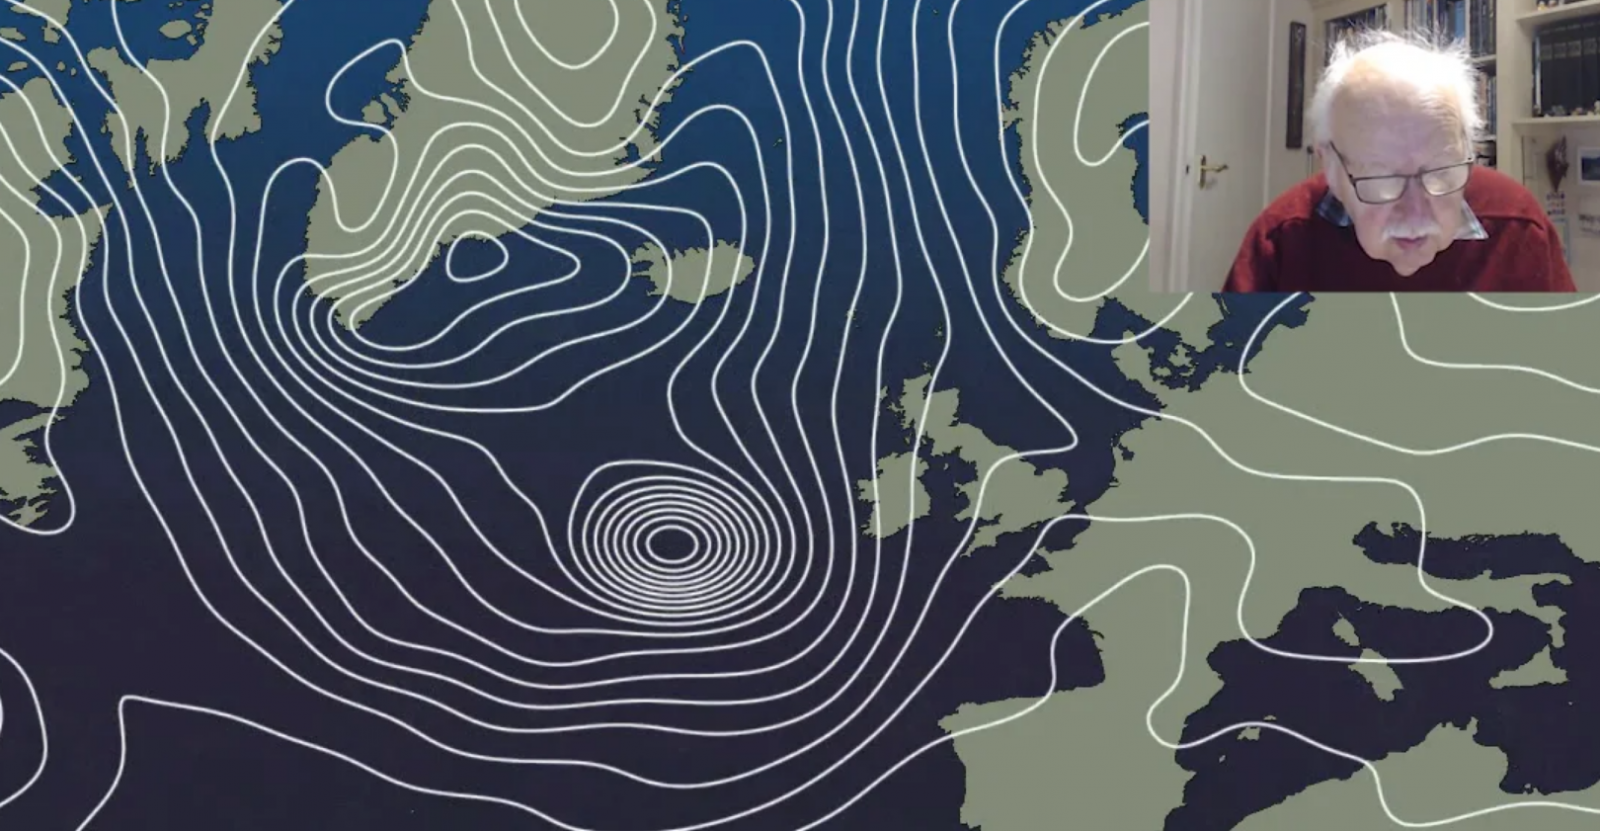 Michael Fish: A brief lull from Sunday but the wet, windy weather will be back